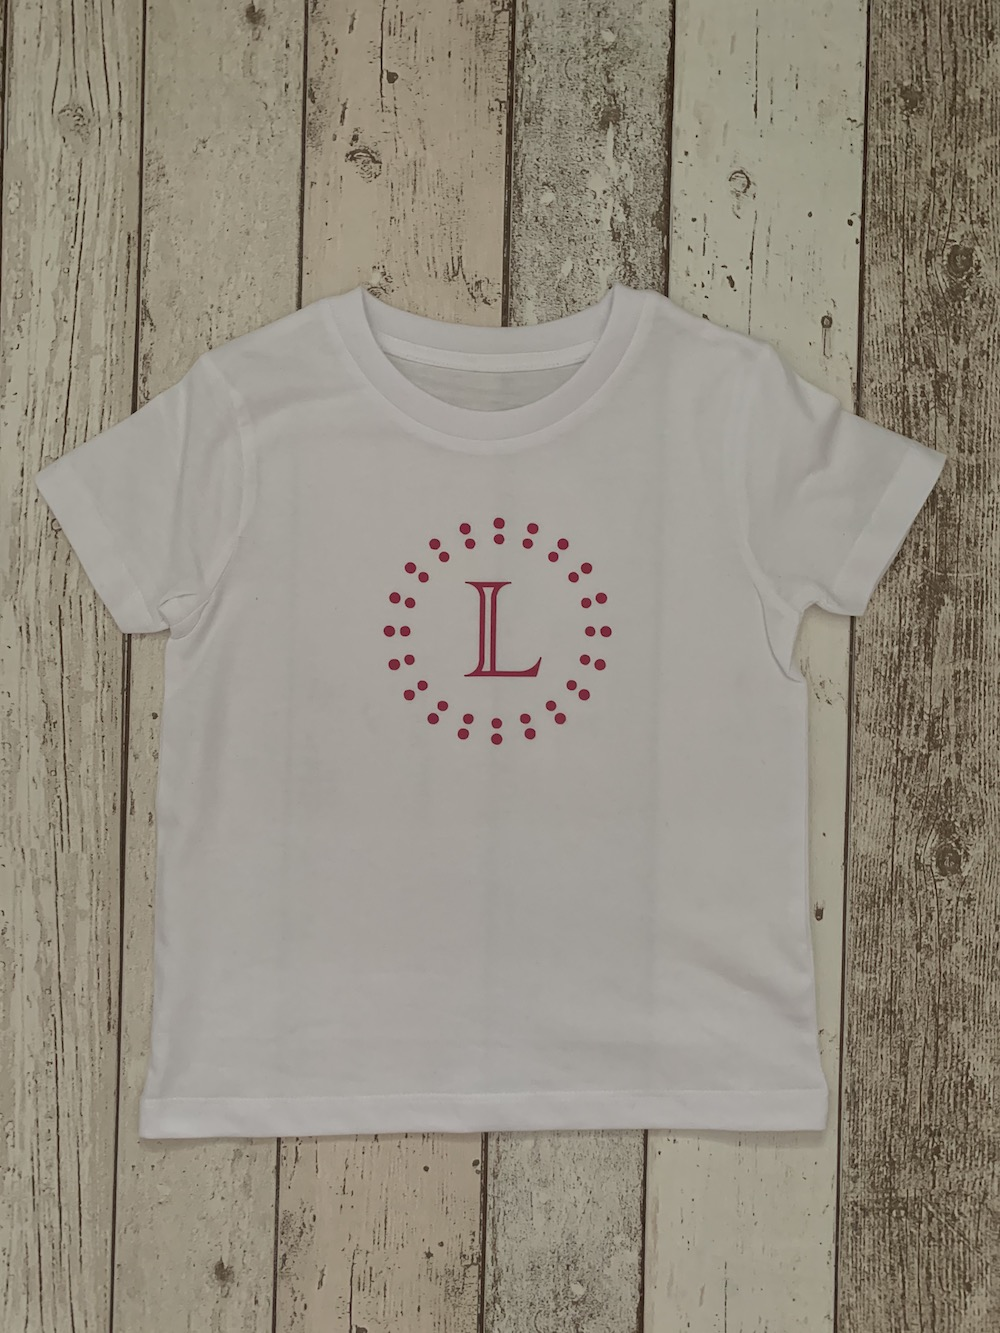 Circles Personalised Tshirt – White And Pink